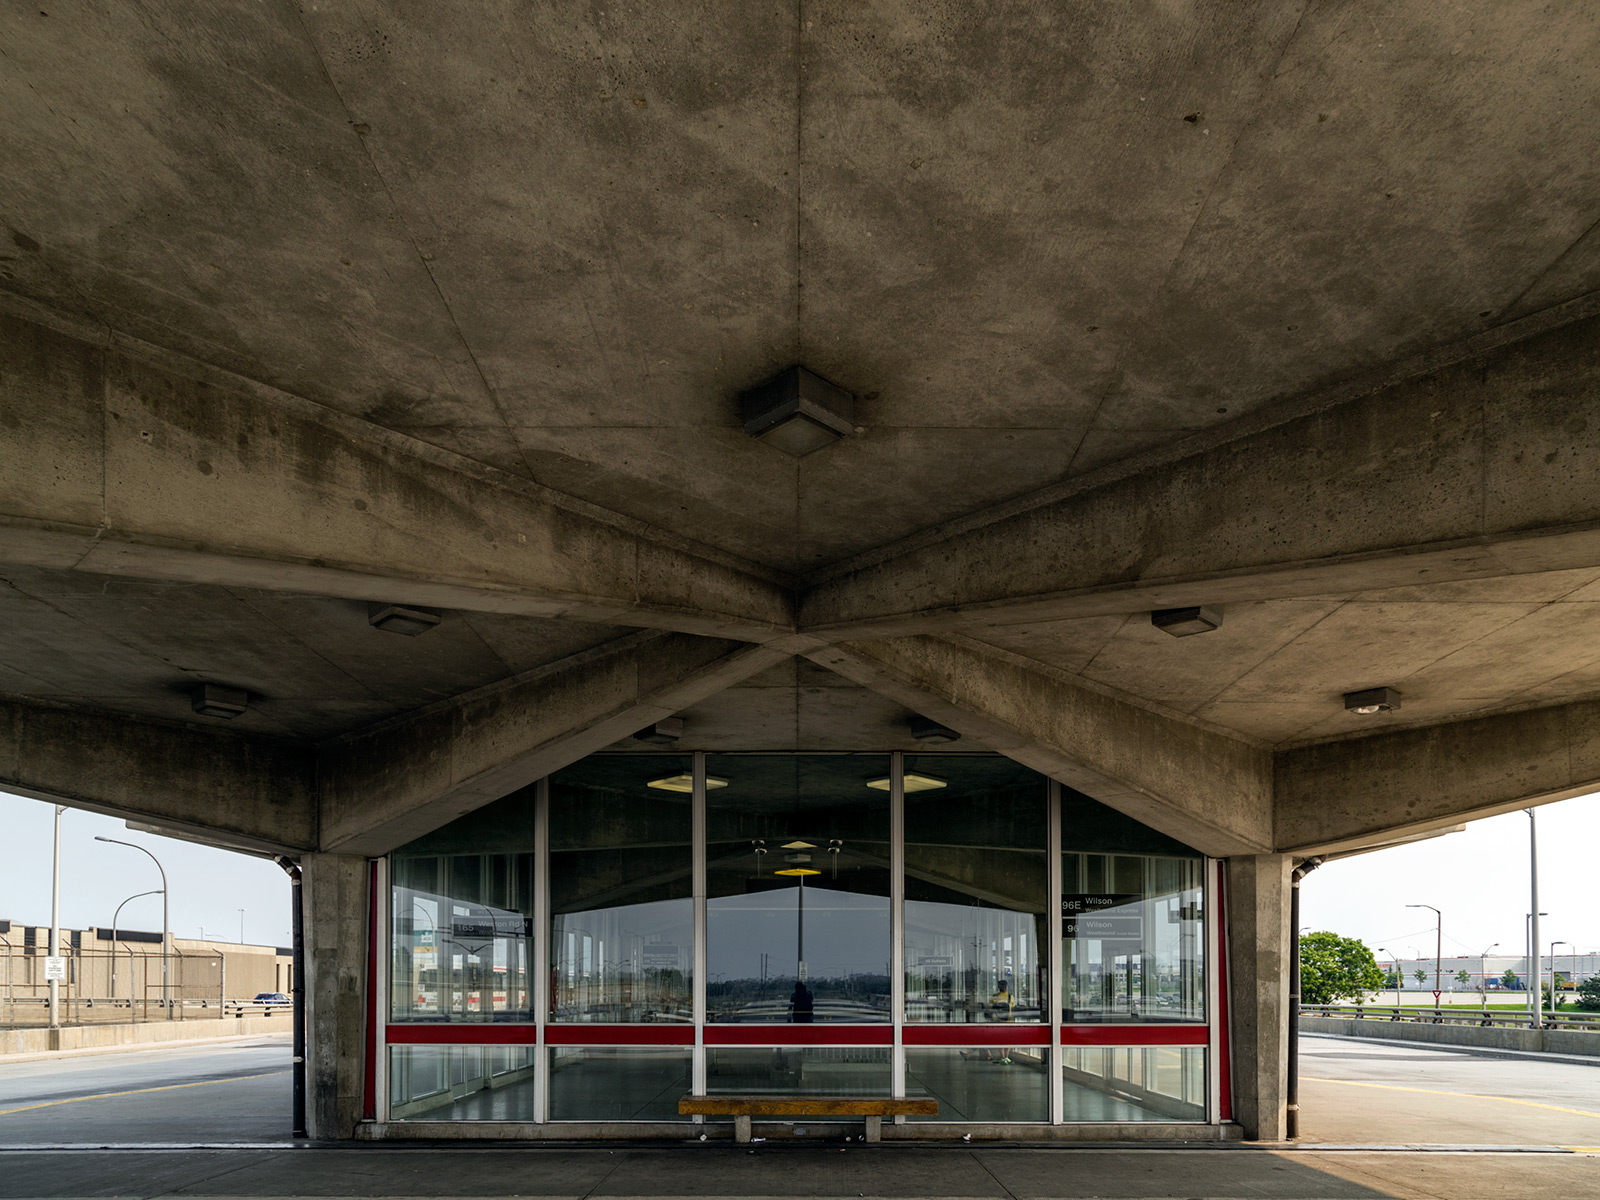 20150707. The wonderful concrete modernism of the Wilson Station